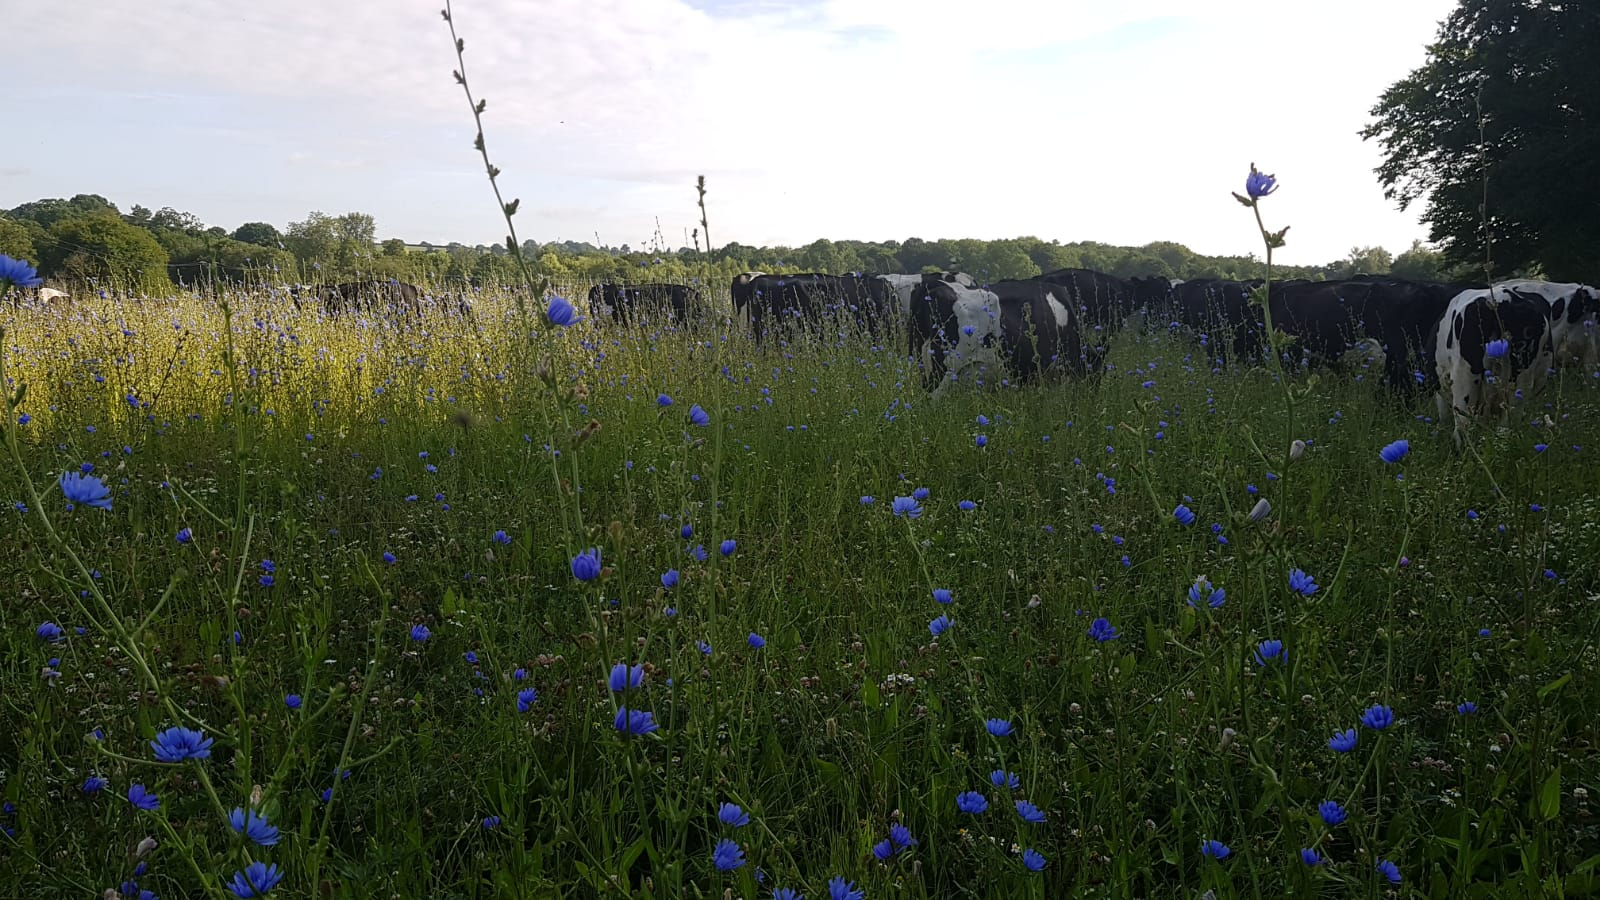 a field of flowers with cows in the background